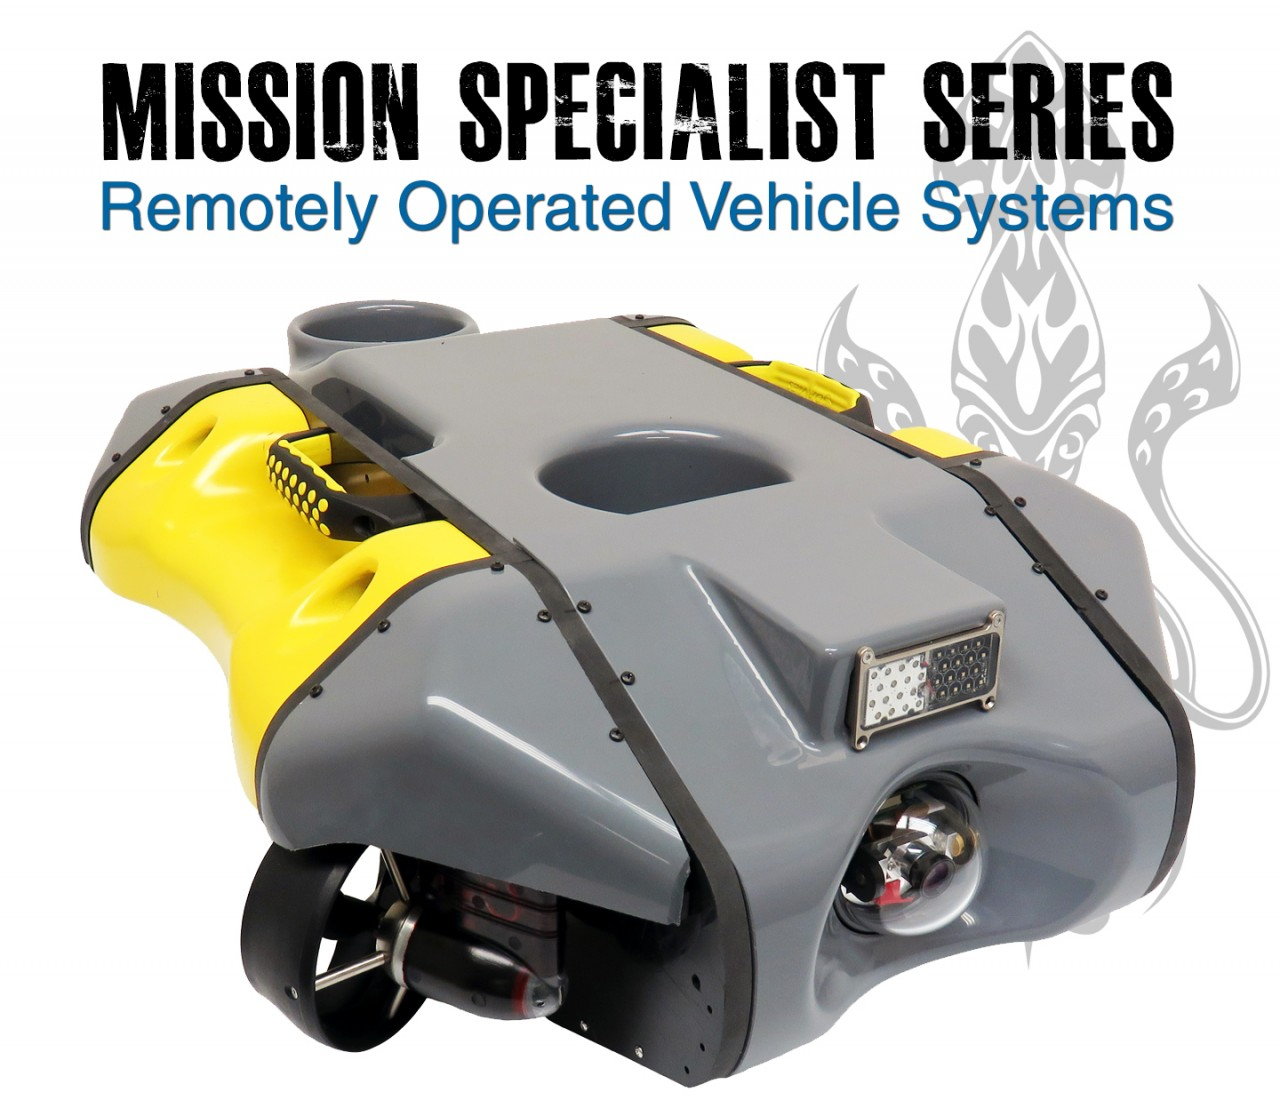 FEBRUARY 10, 2016 - eWorkshop: Introducing VideoRay Mission Specialist Series ROVs